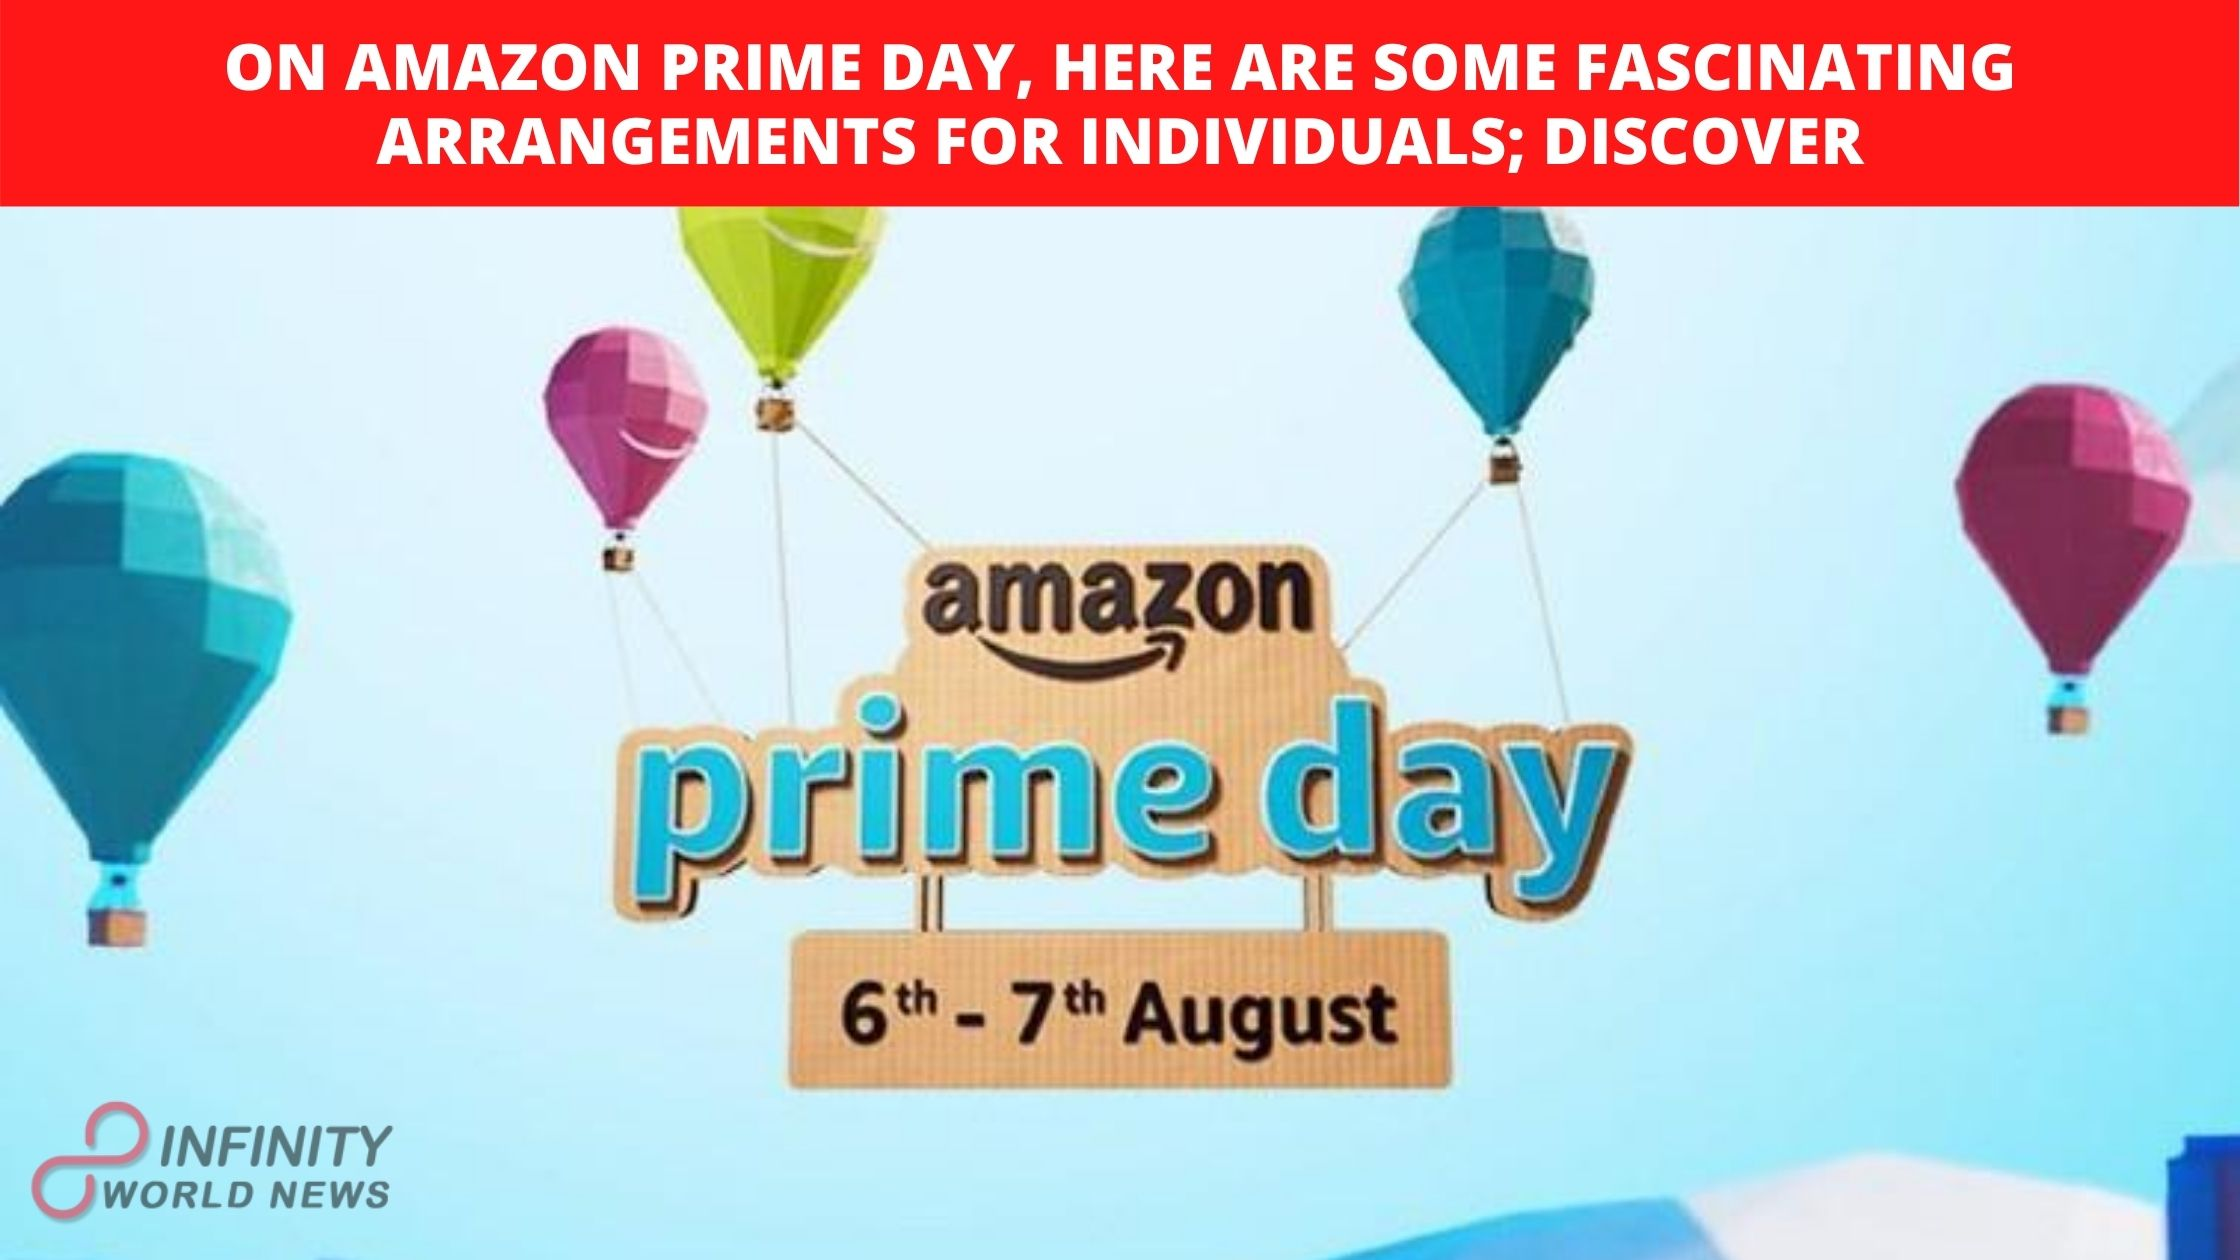 On Amazon Prime Day, here are some fascinating arrangements for individuals; discover